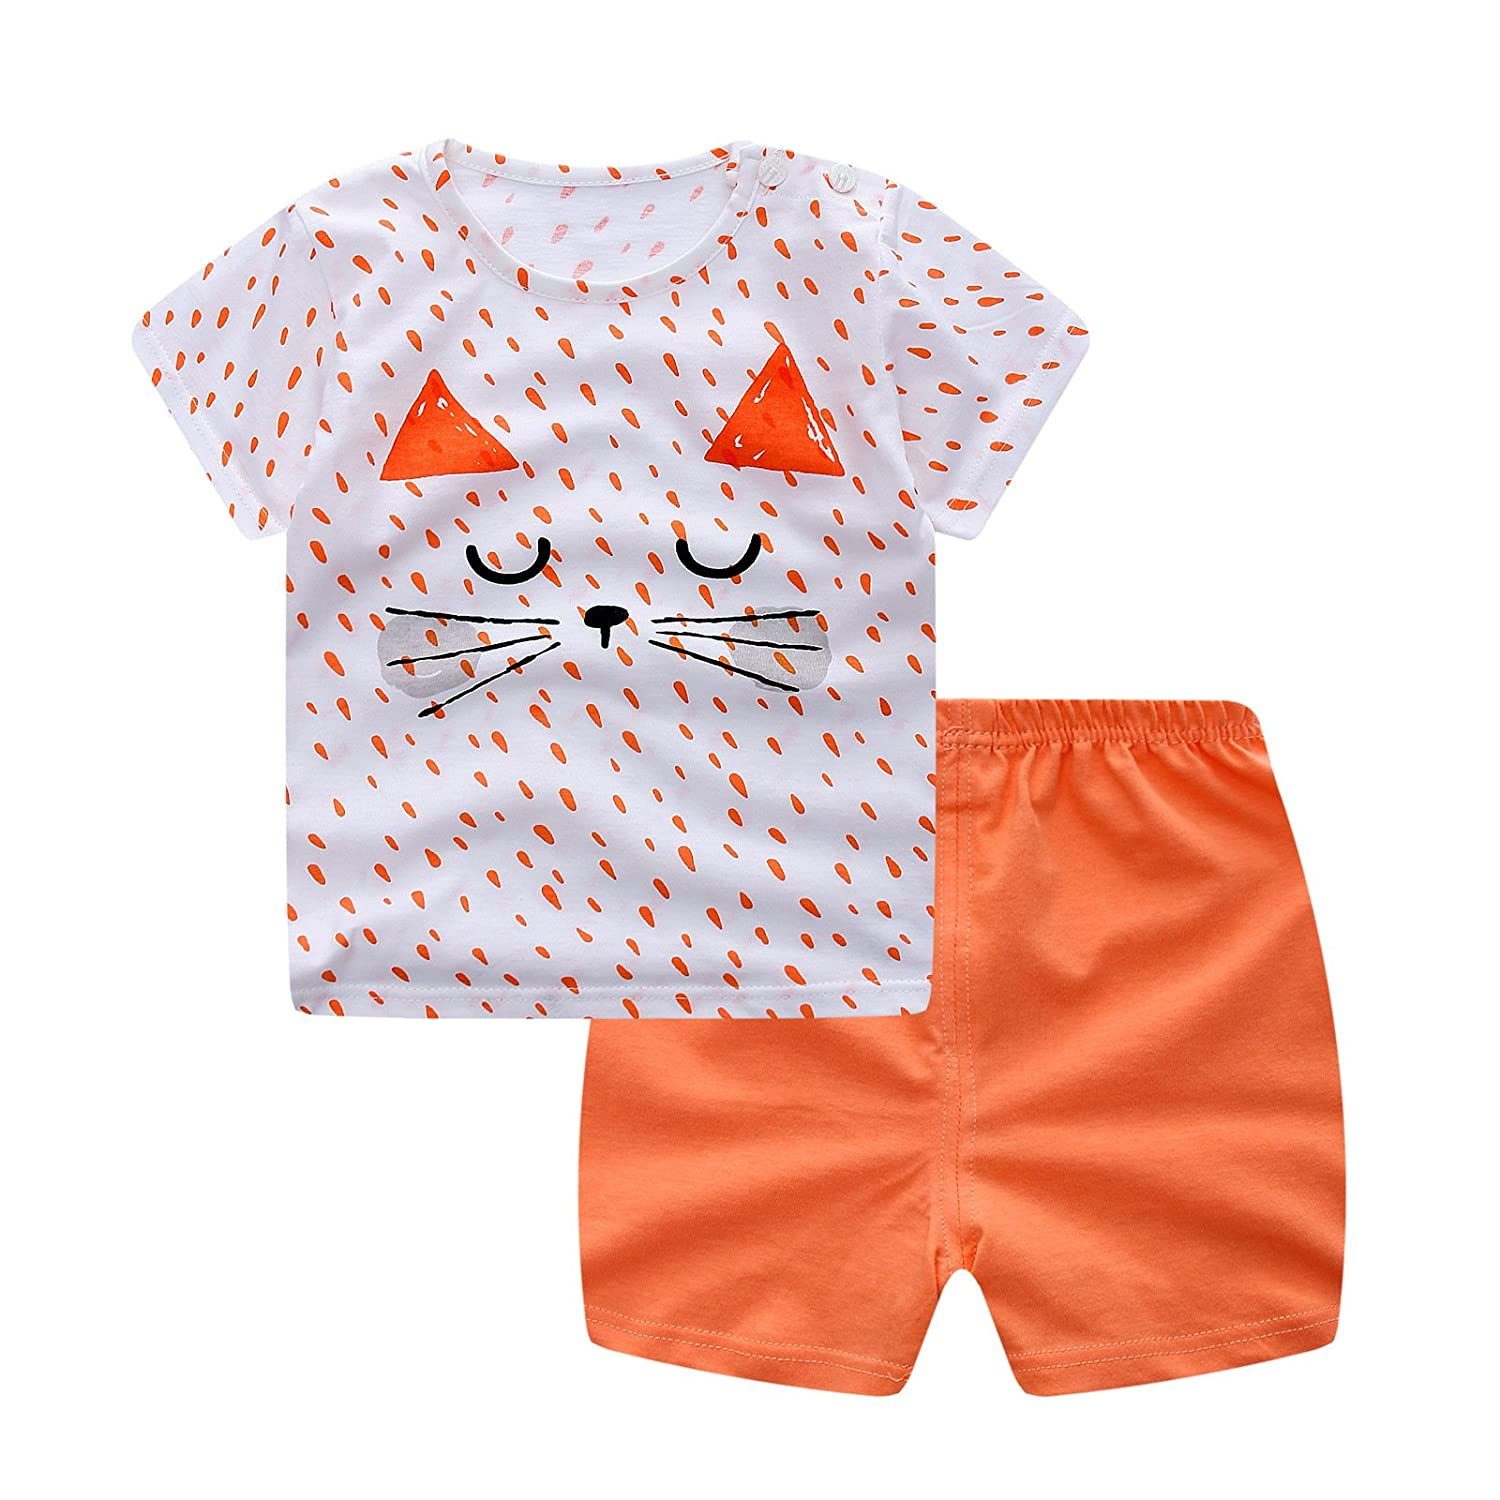 MSSuger Baby Girls' Cotton Clothing Short Baby Set Summer Cute Cartoon T-Shirt+Pant